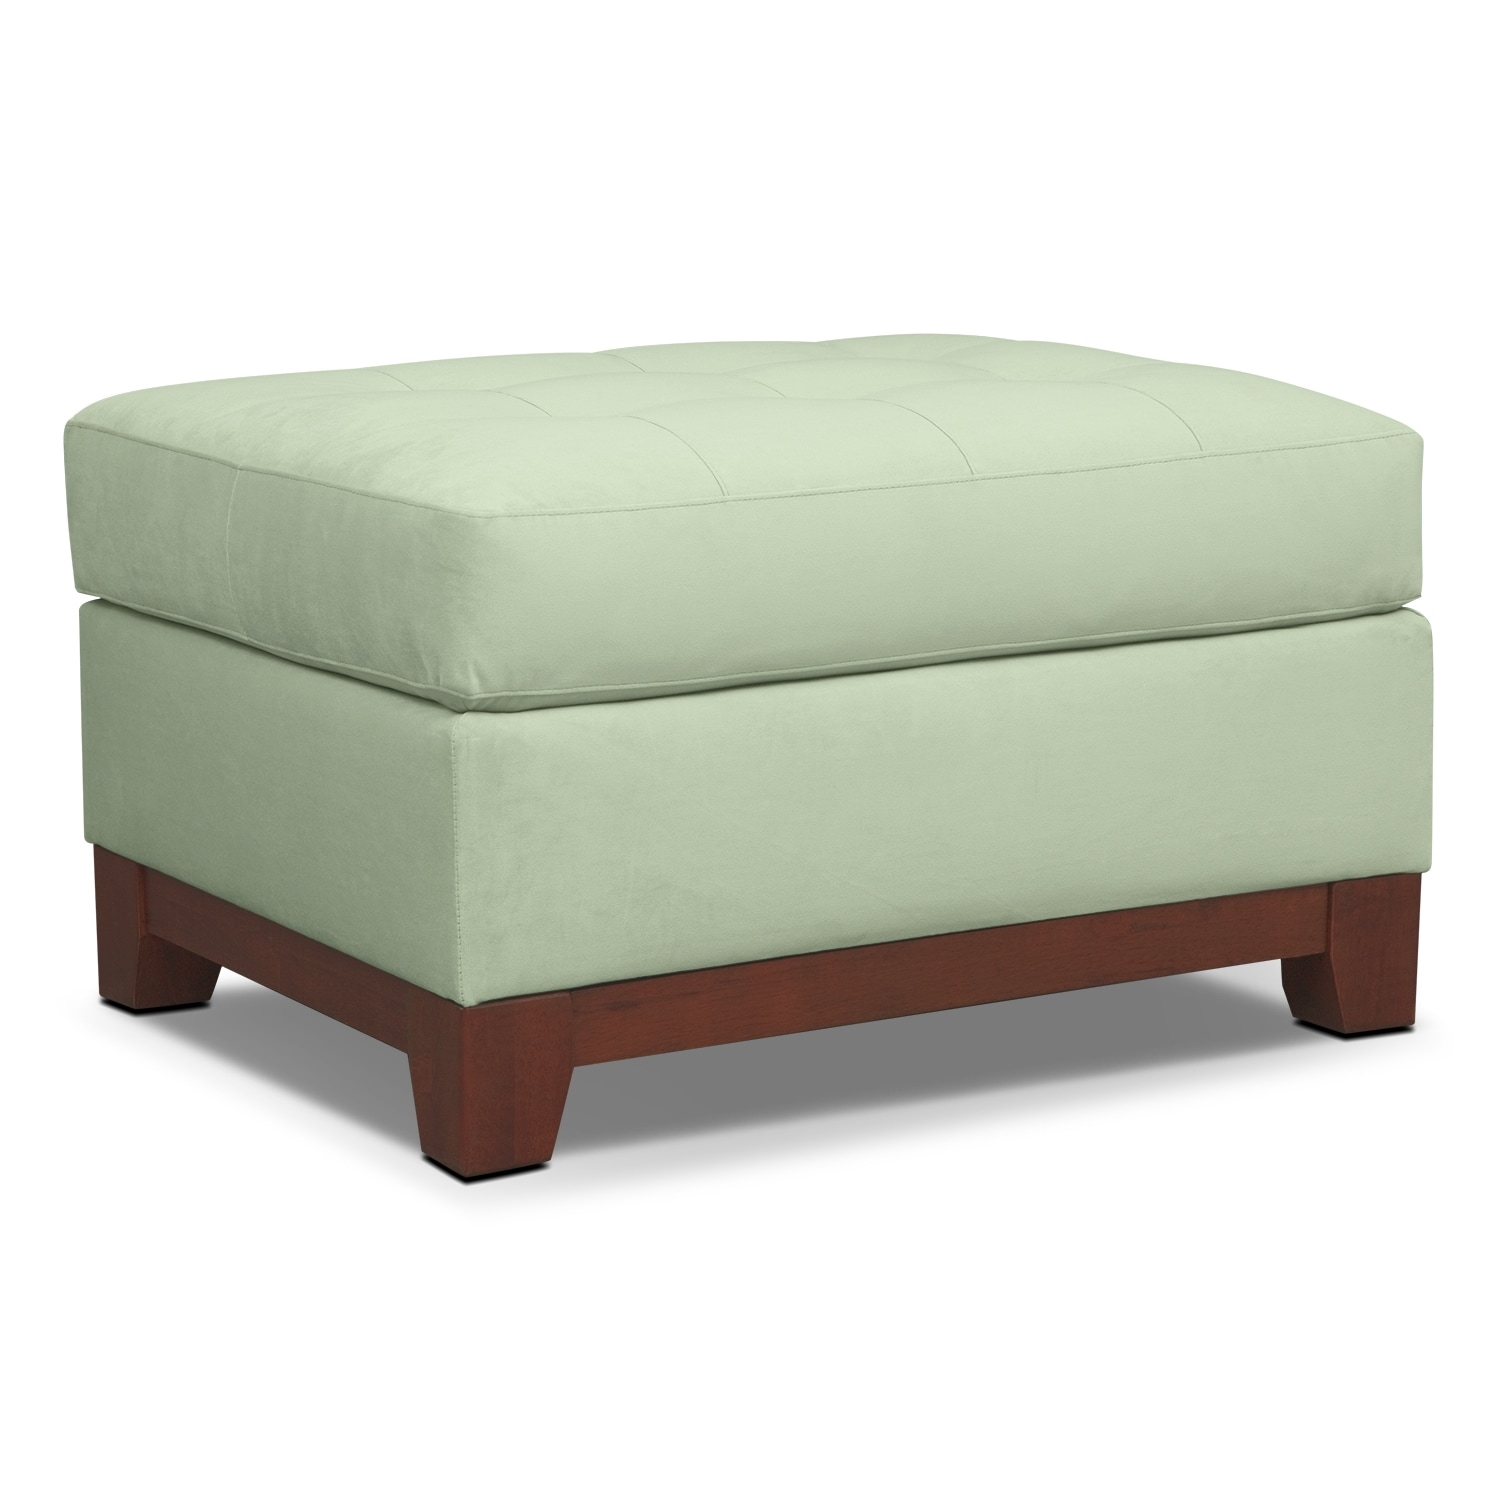 Living Room Furniture - Solace Spa Ottoman